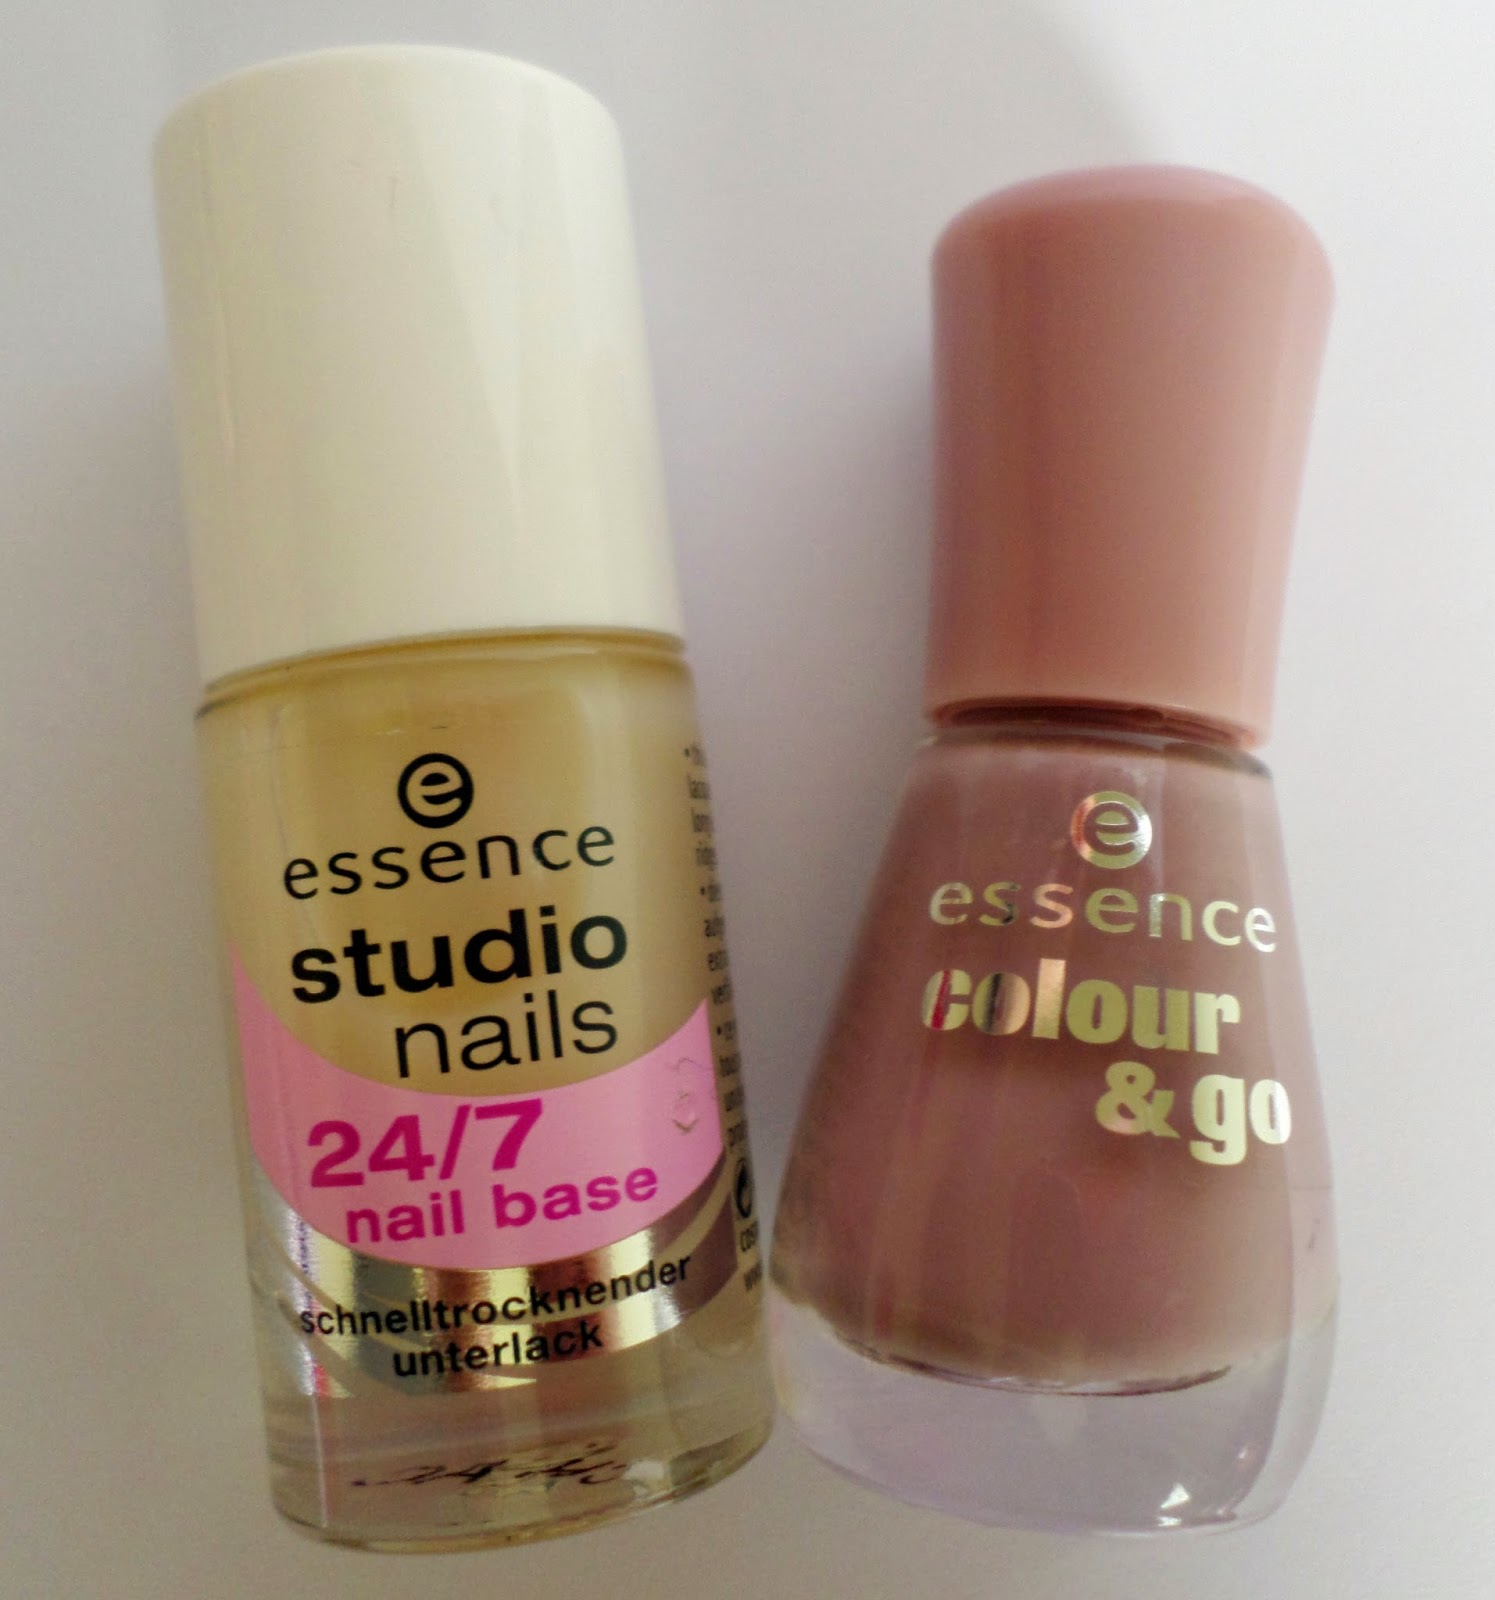 Essence Studio Nails 24/7 Base Coat and Colour & Go in Love Me, Cupcake!